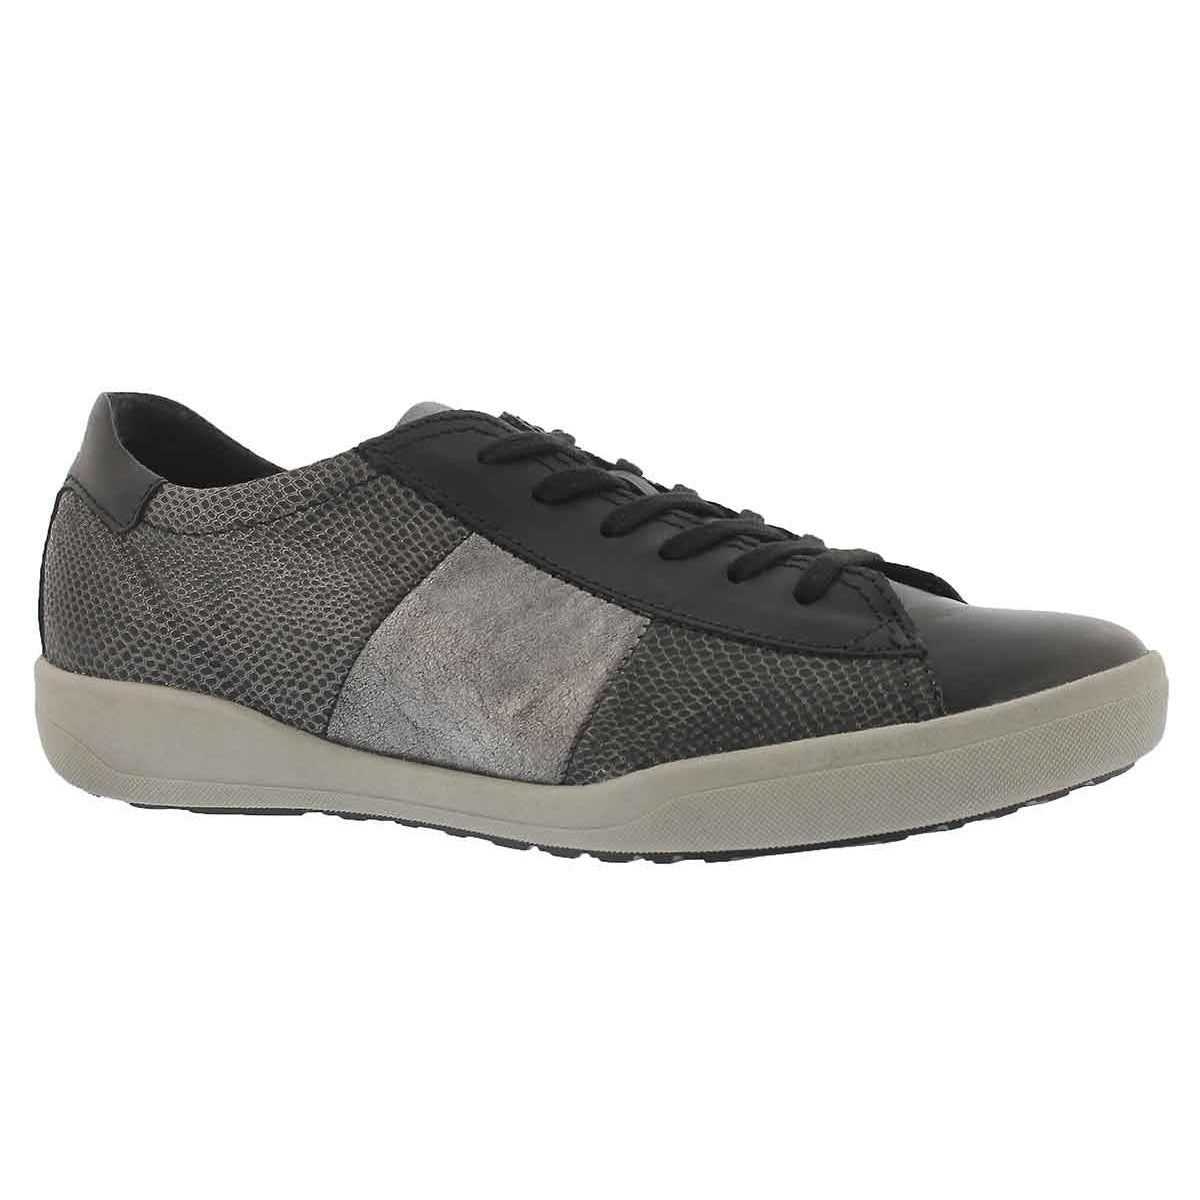 Women's SINA 27 schwarz lace up casual sneakers